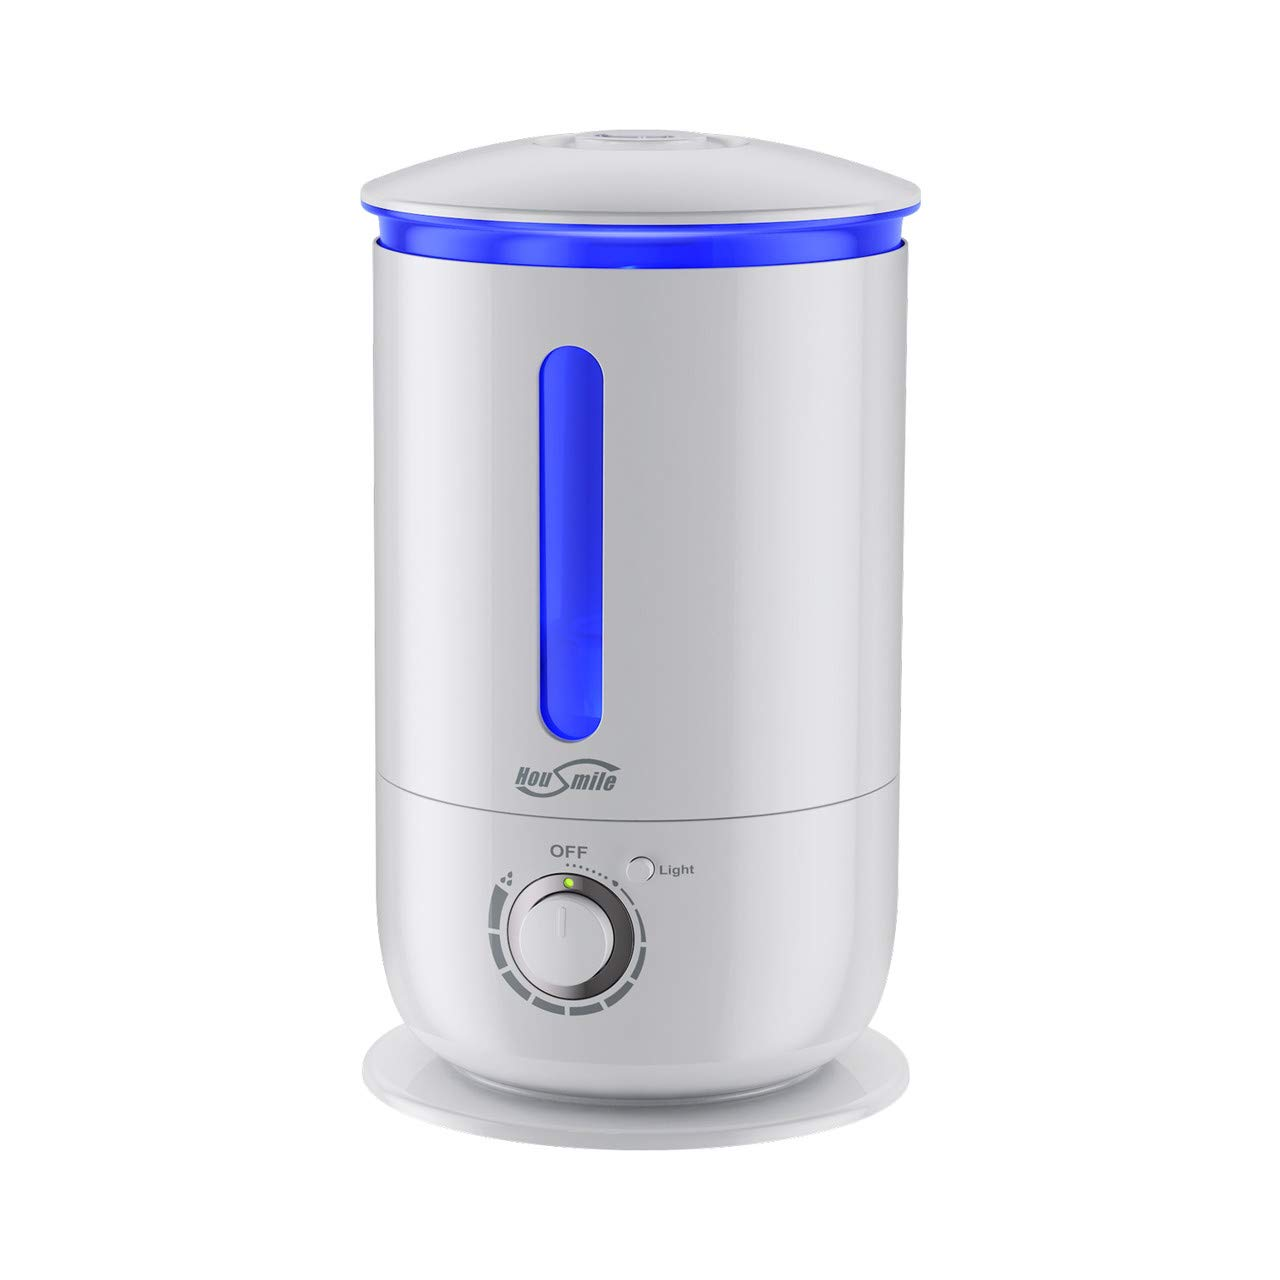 Housmile Cool Mist Ultrasonic Humidifier, 3.5L Large Capacity, Ultra-Quiet Operation Auto Shut-Off Humidifier for Home and Large Office